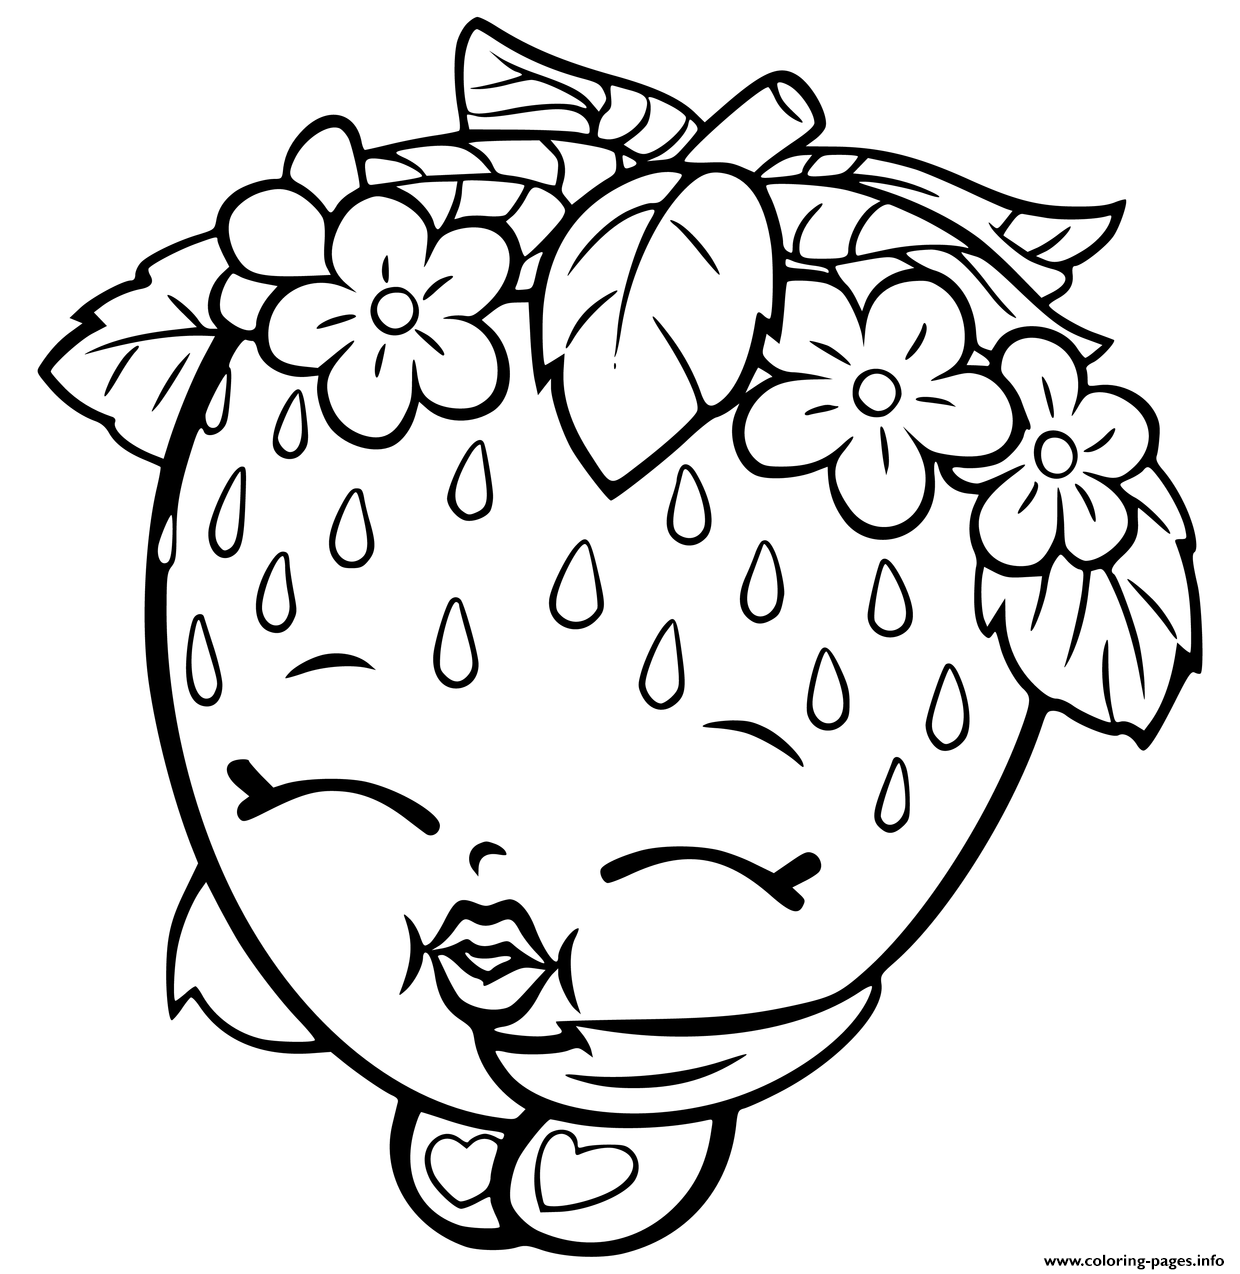 shopkin coloring pictures kooky cookie shopkin coloring page free printable shopkin pictures coloring